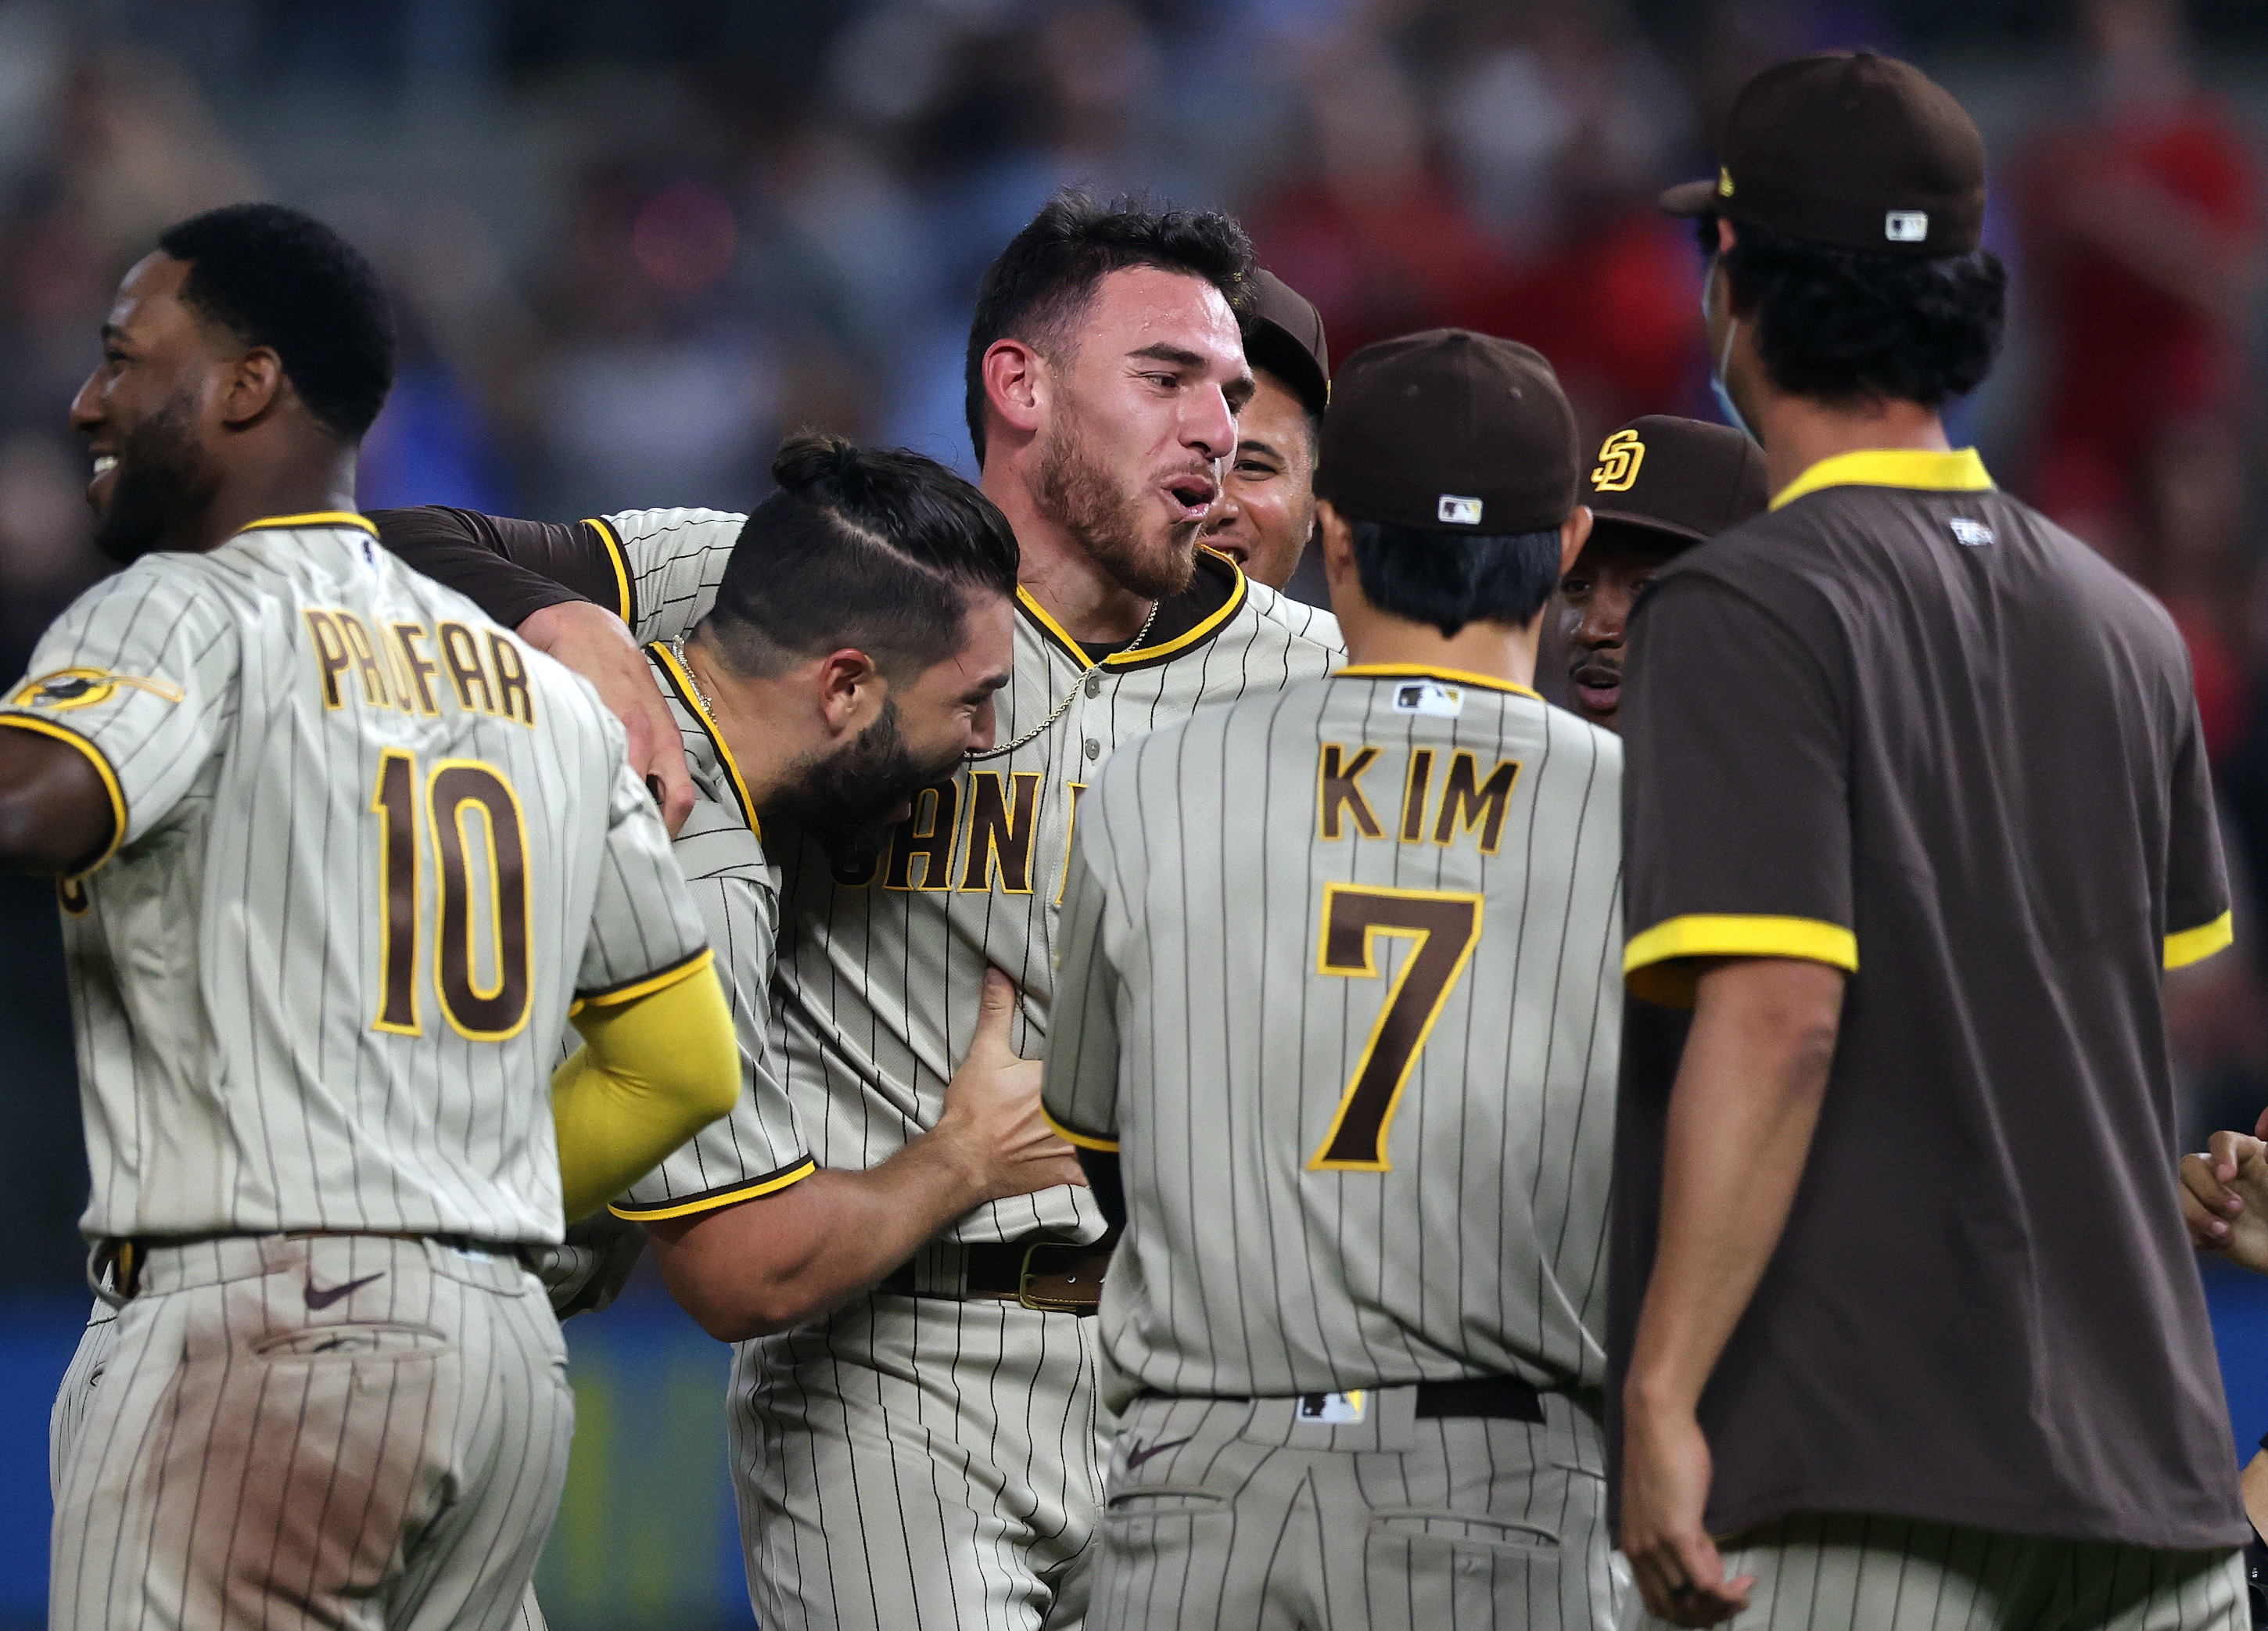 Joe Musgrove #44 of the San Diego Padres after pitching a no-hitter against the Texas Rangers at Globe Life Field on April 09, 2021 in Arlington, Texas.